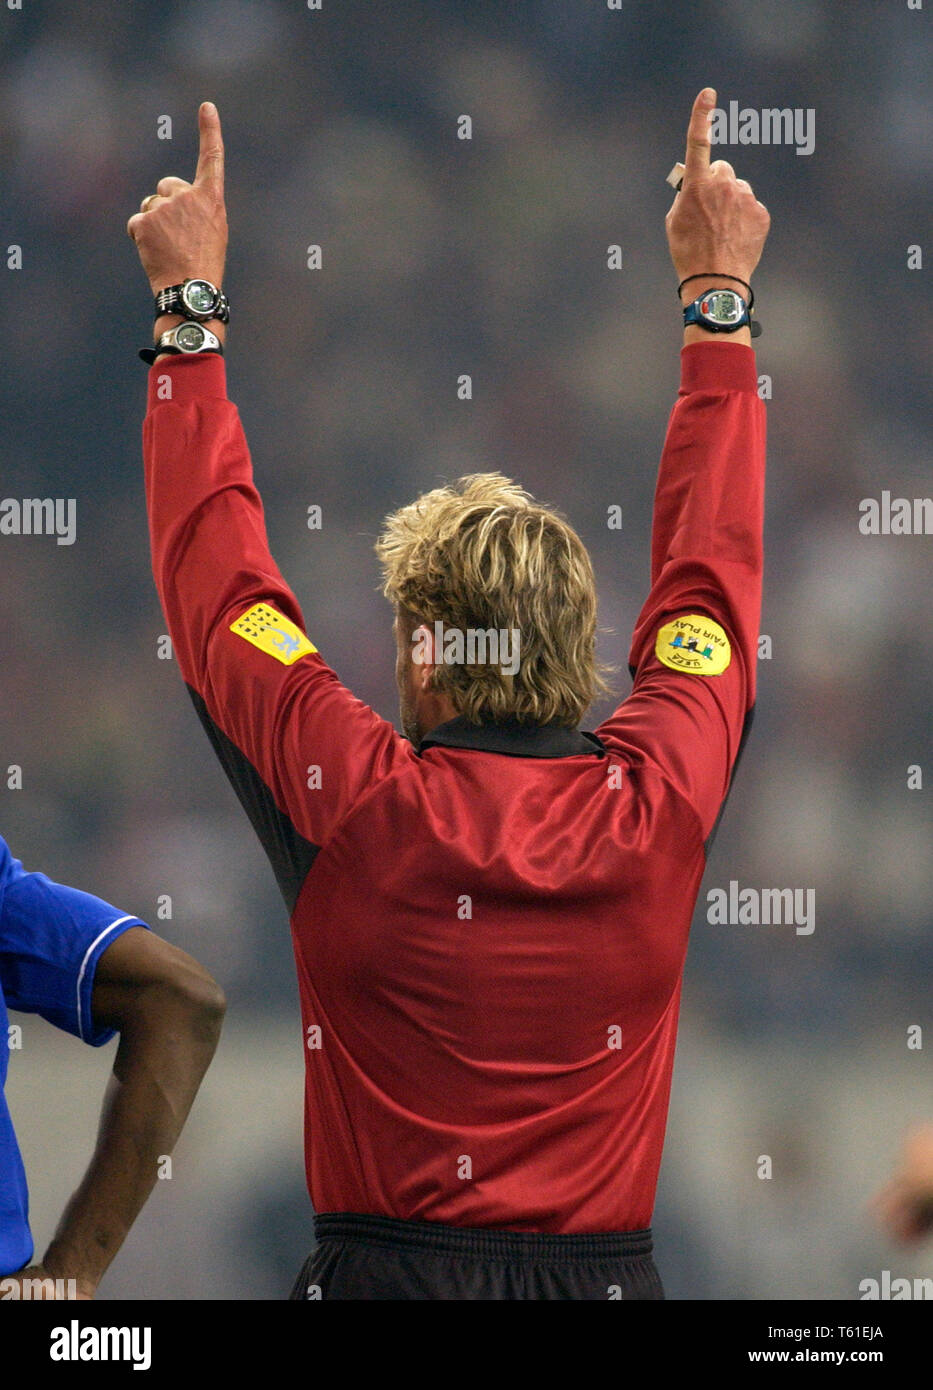 Schalke Arena Gelsenkirchen Germany, 9.12.2003, Football: UEFA Champions-League,  Besiktas Istanbul (b/w) vs Chelsea FC (blue) 0:2 --- referee Anders Frisk (SWE) wears three watches - Stock Image